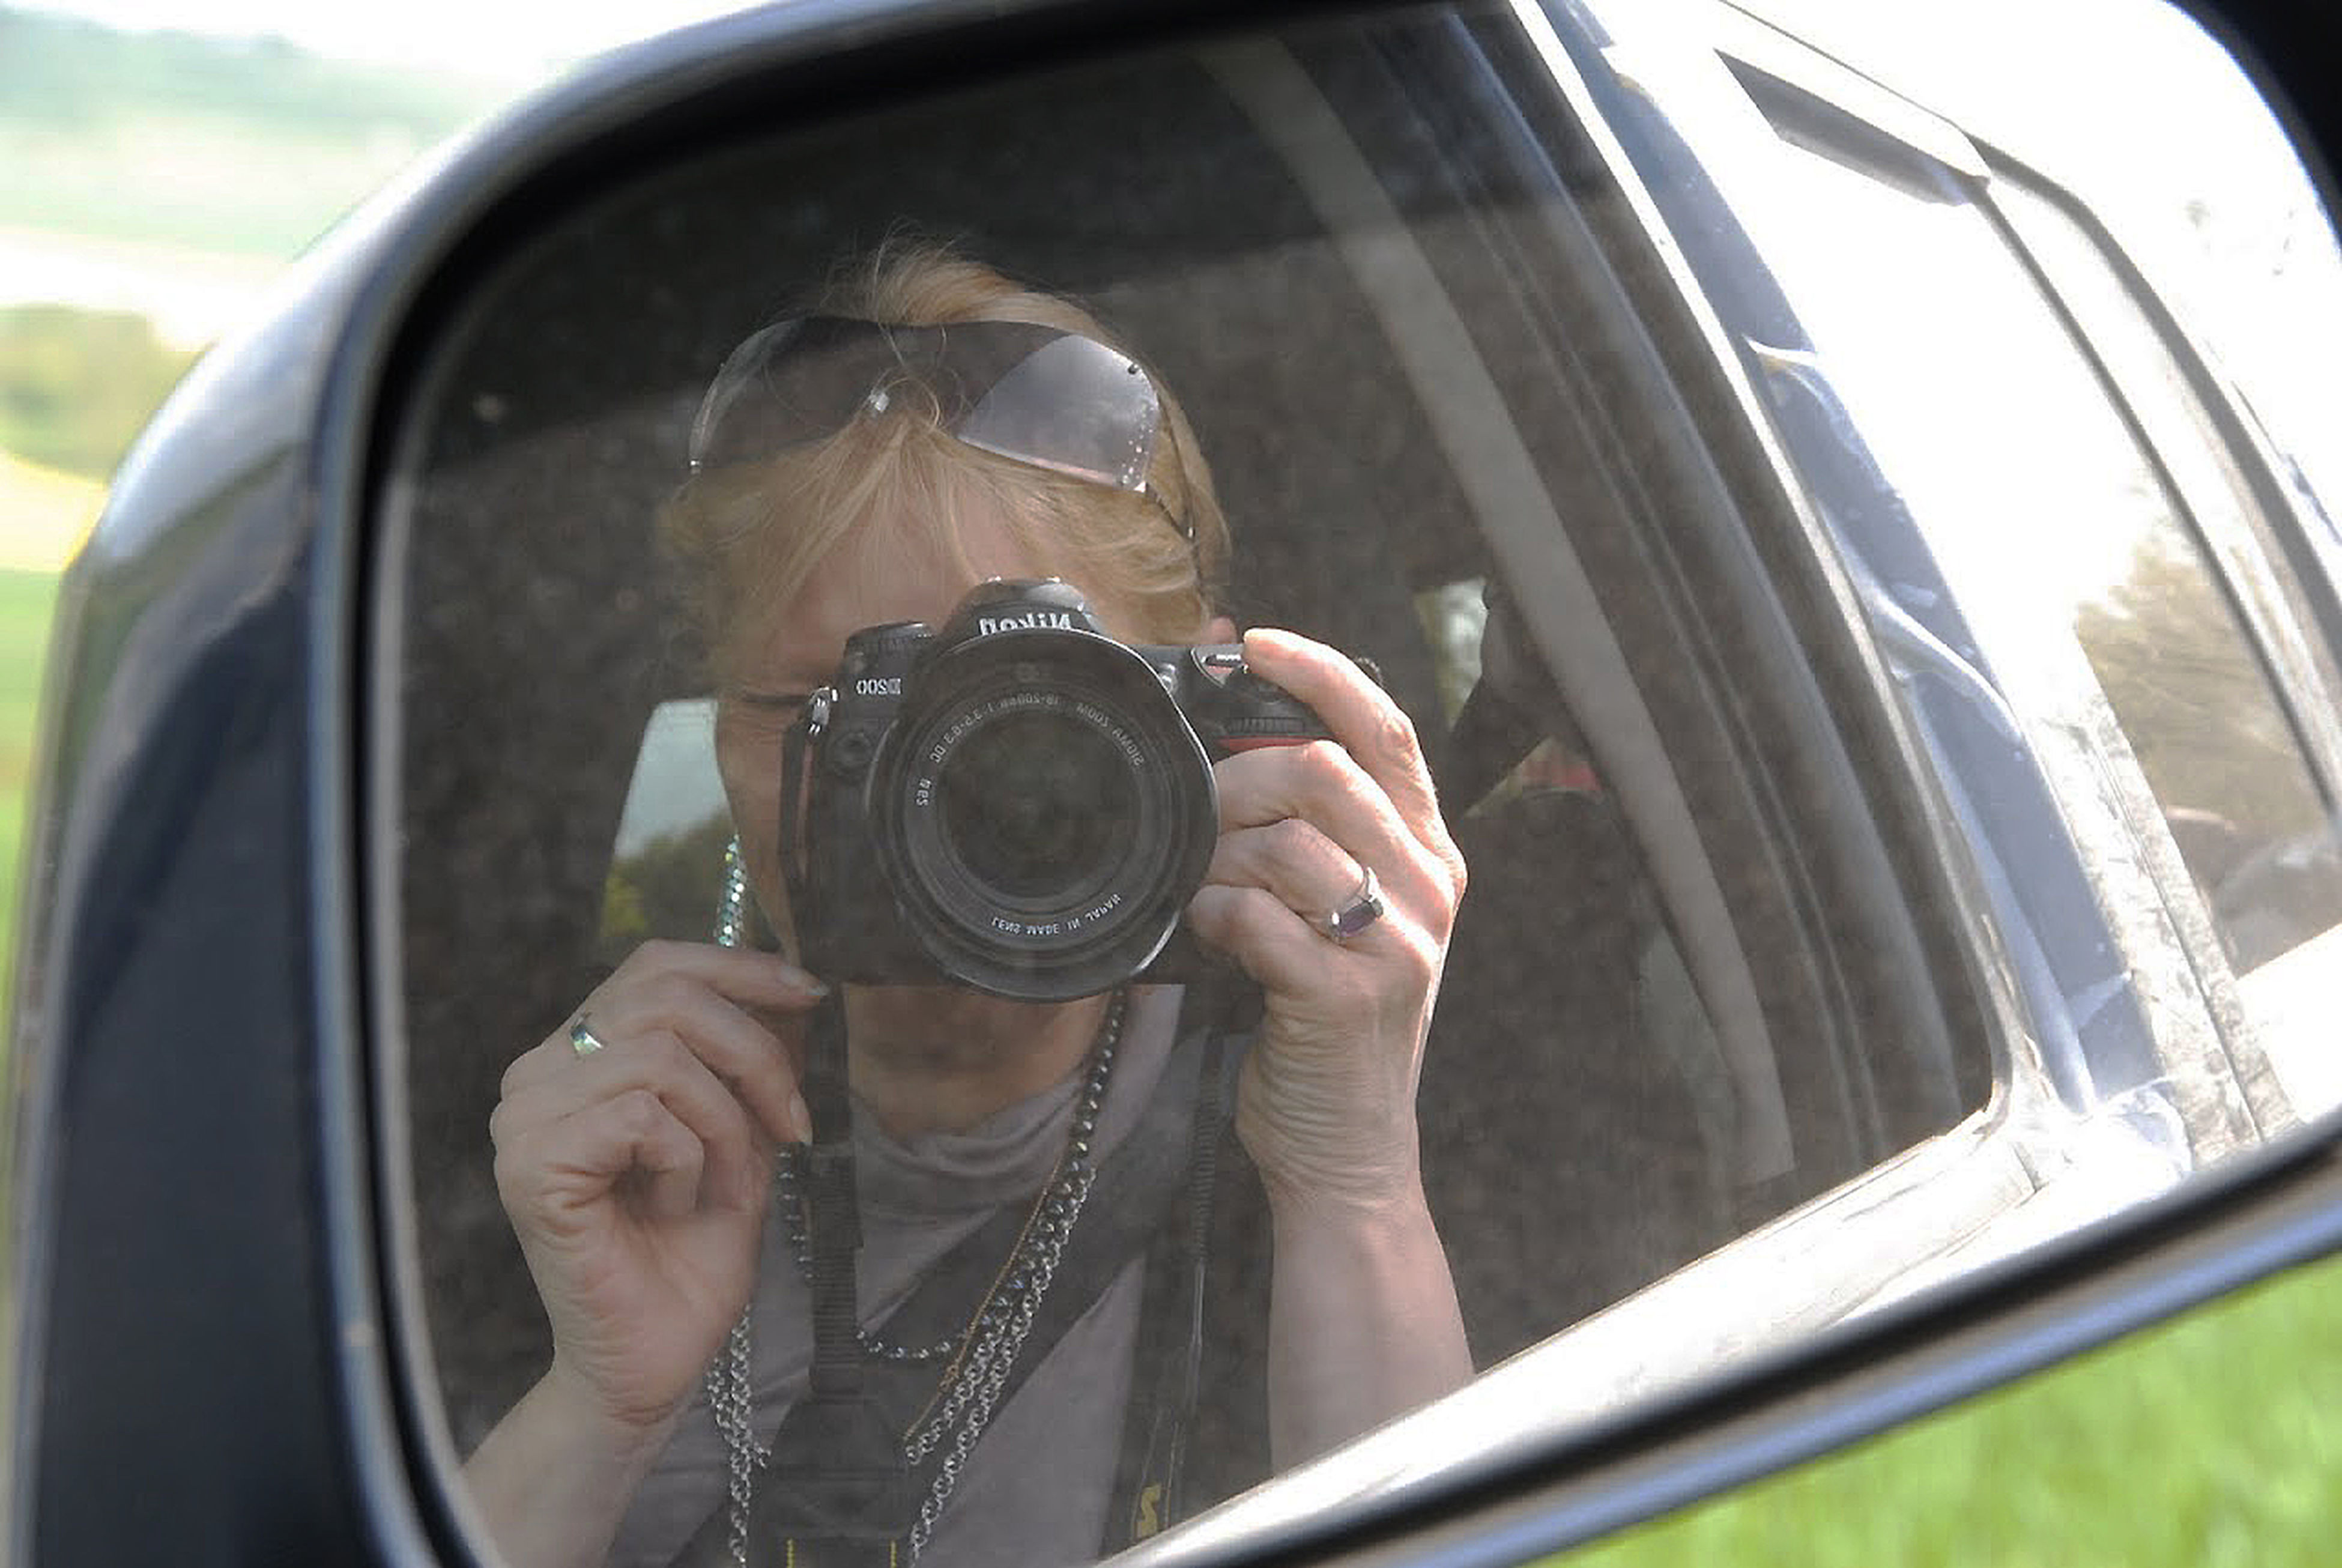 transportation, mode of transport, land vehicle, car, photography themes, part of, holding, lifestyles, vehicle interior, travel, photographing, close-up, car interior, cropped, leisure activity, camera - photographic equipment, reflection, side-view mirror